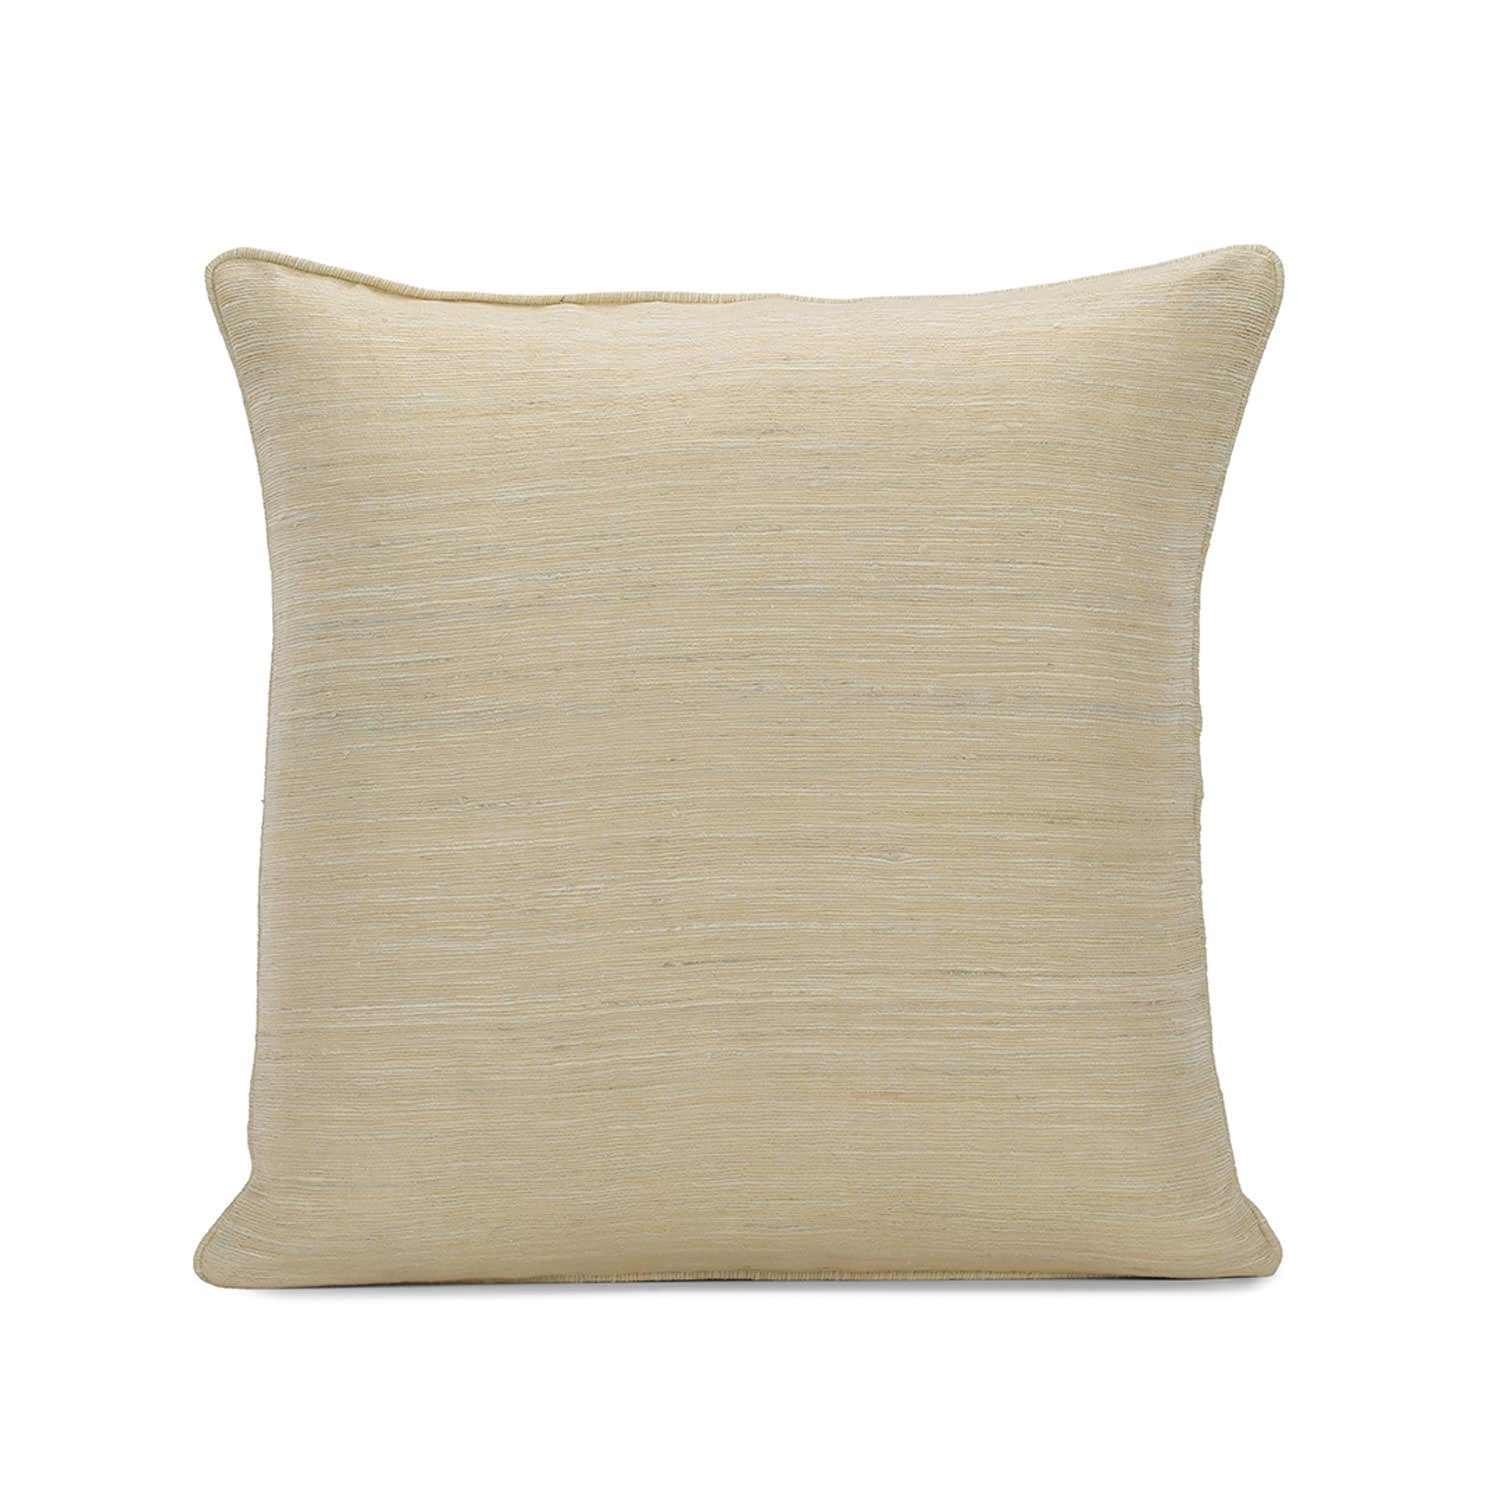 Cancun Sand Raw Silk Cushion Covers - Pair